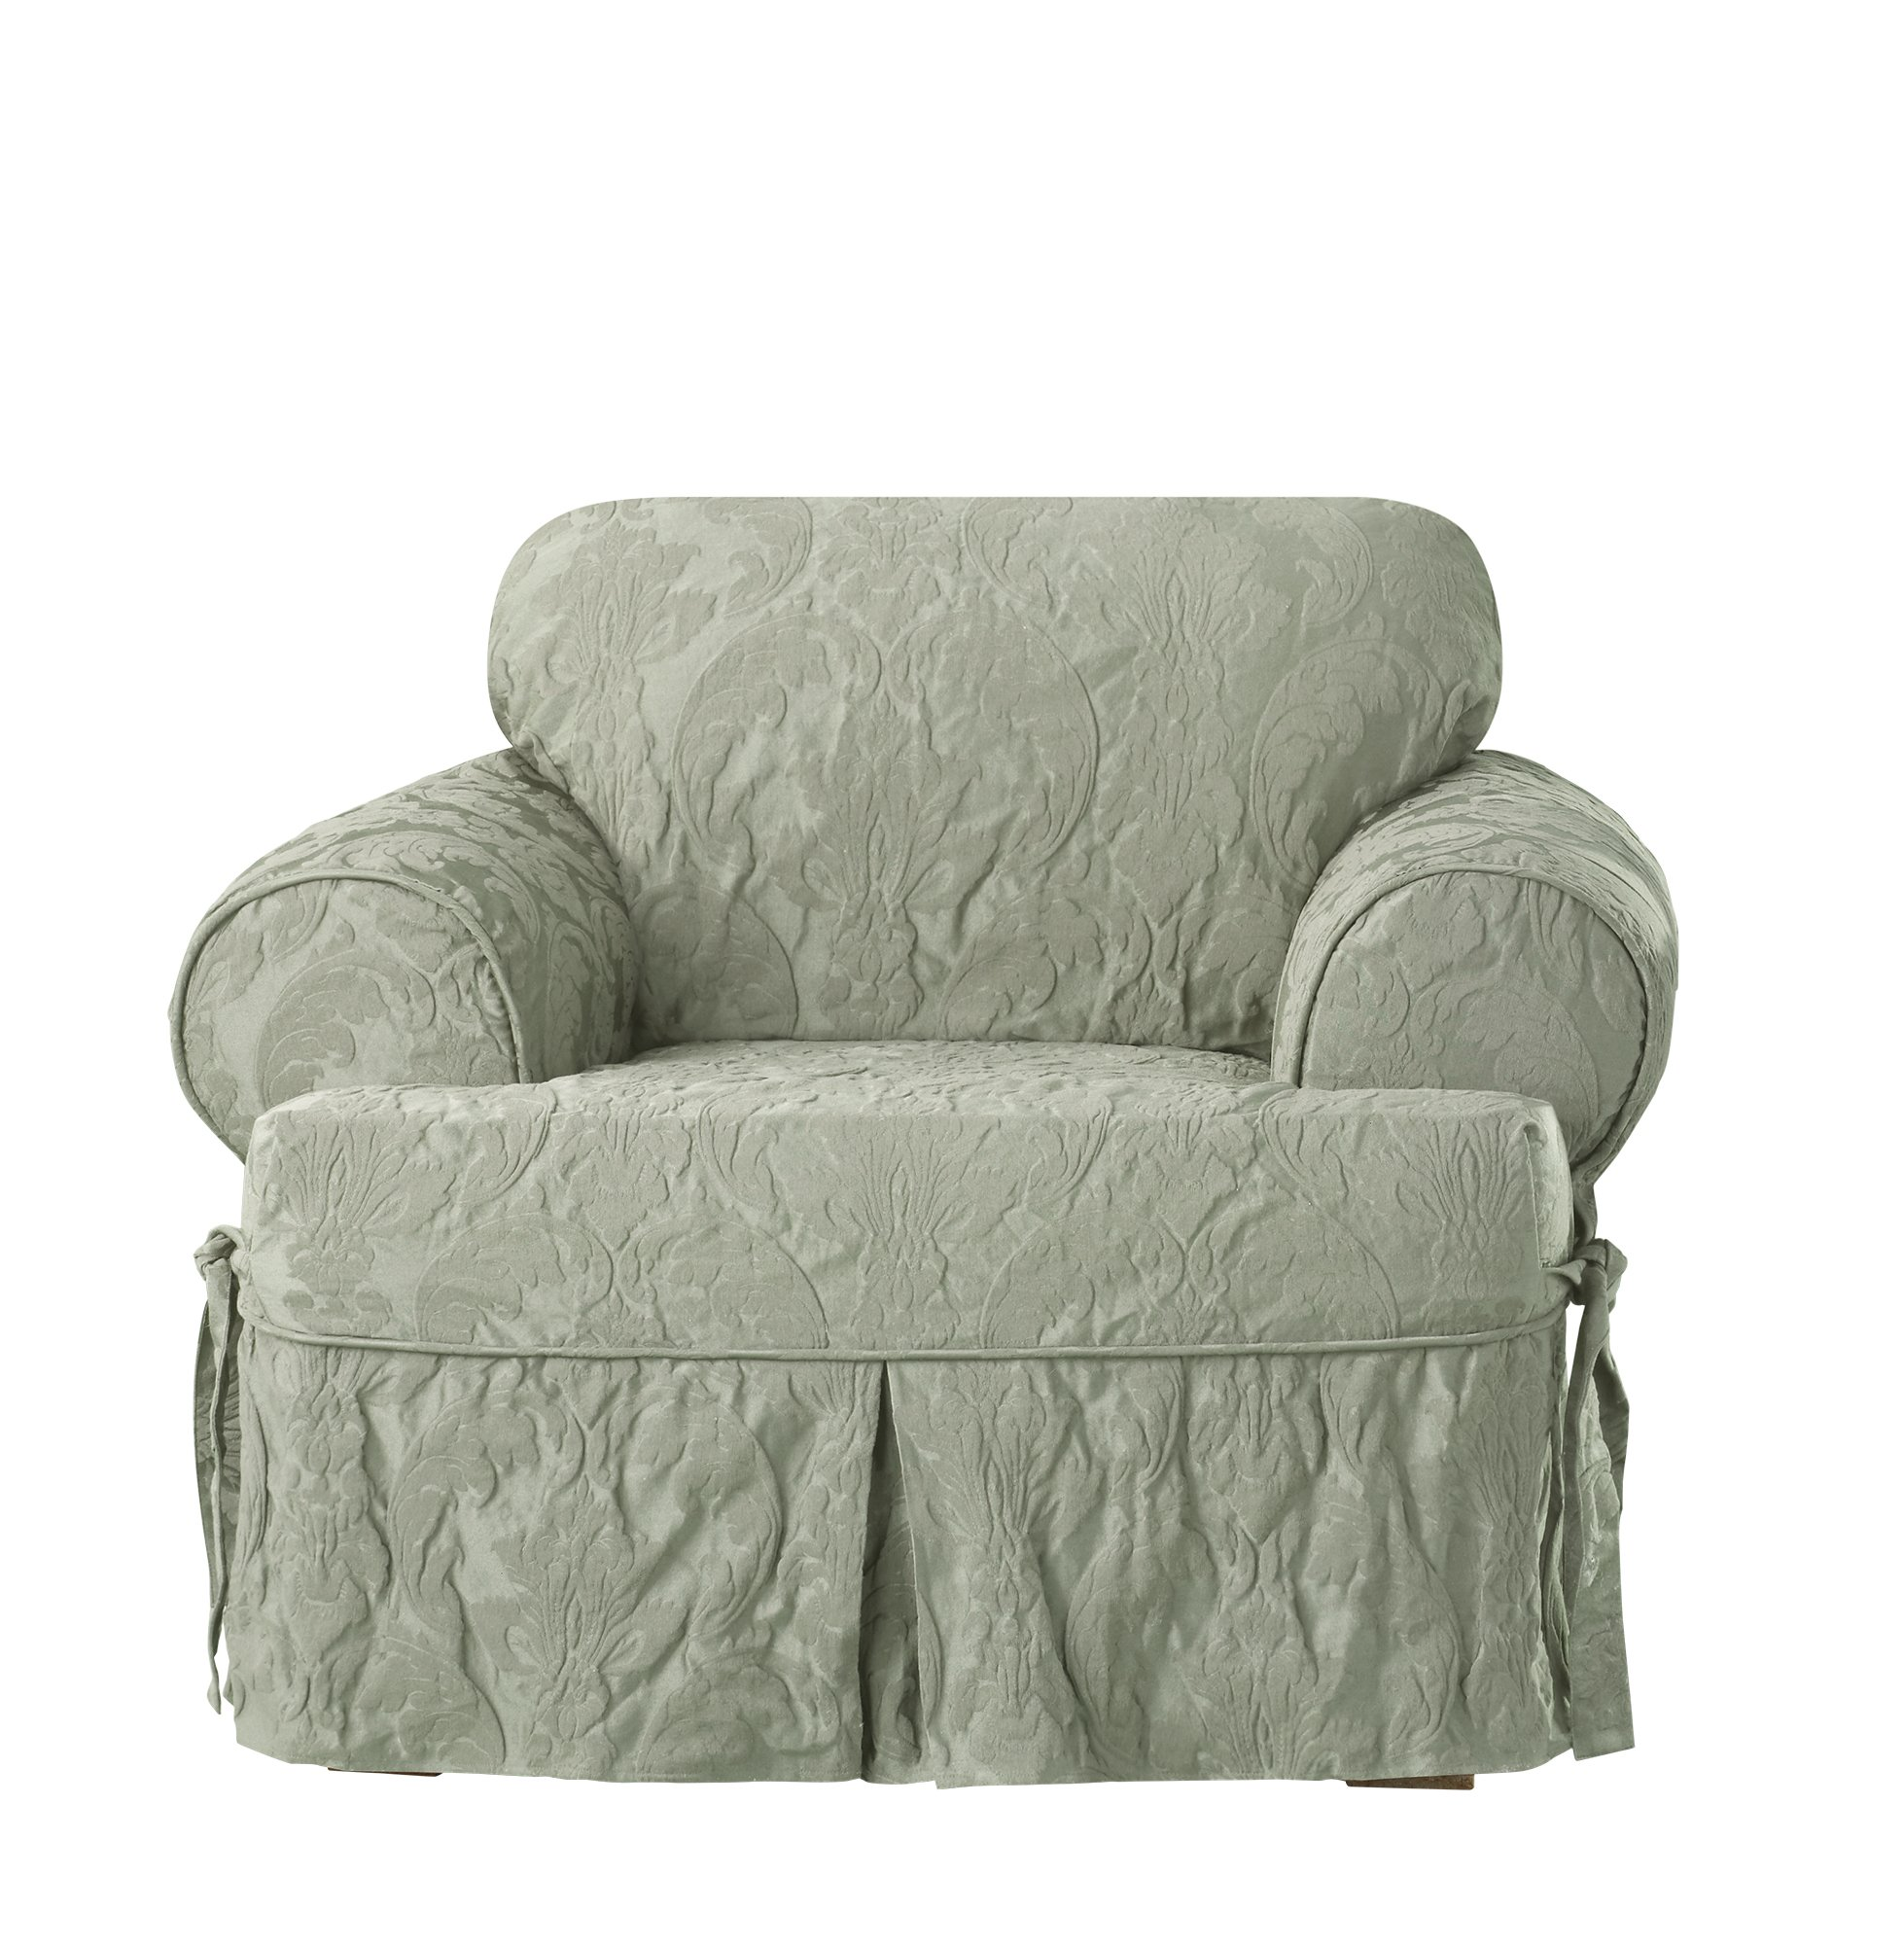 Sure Fit Matelasse Damask One Piece T-Cushion Chair Slipcover - Sage by Surefit